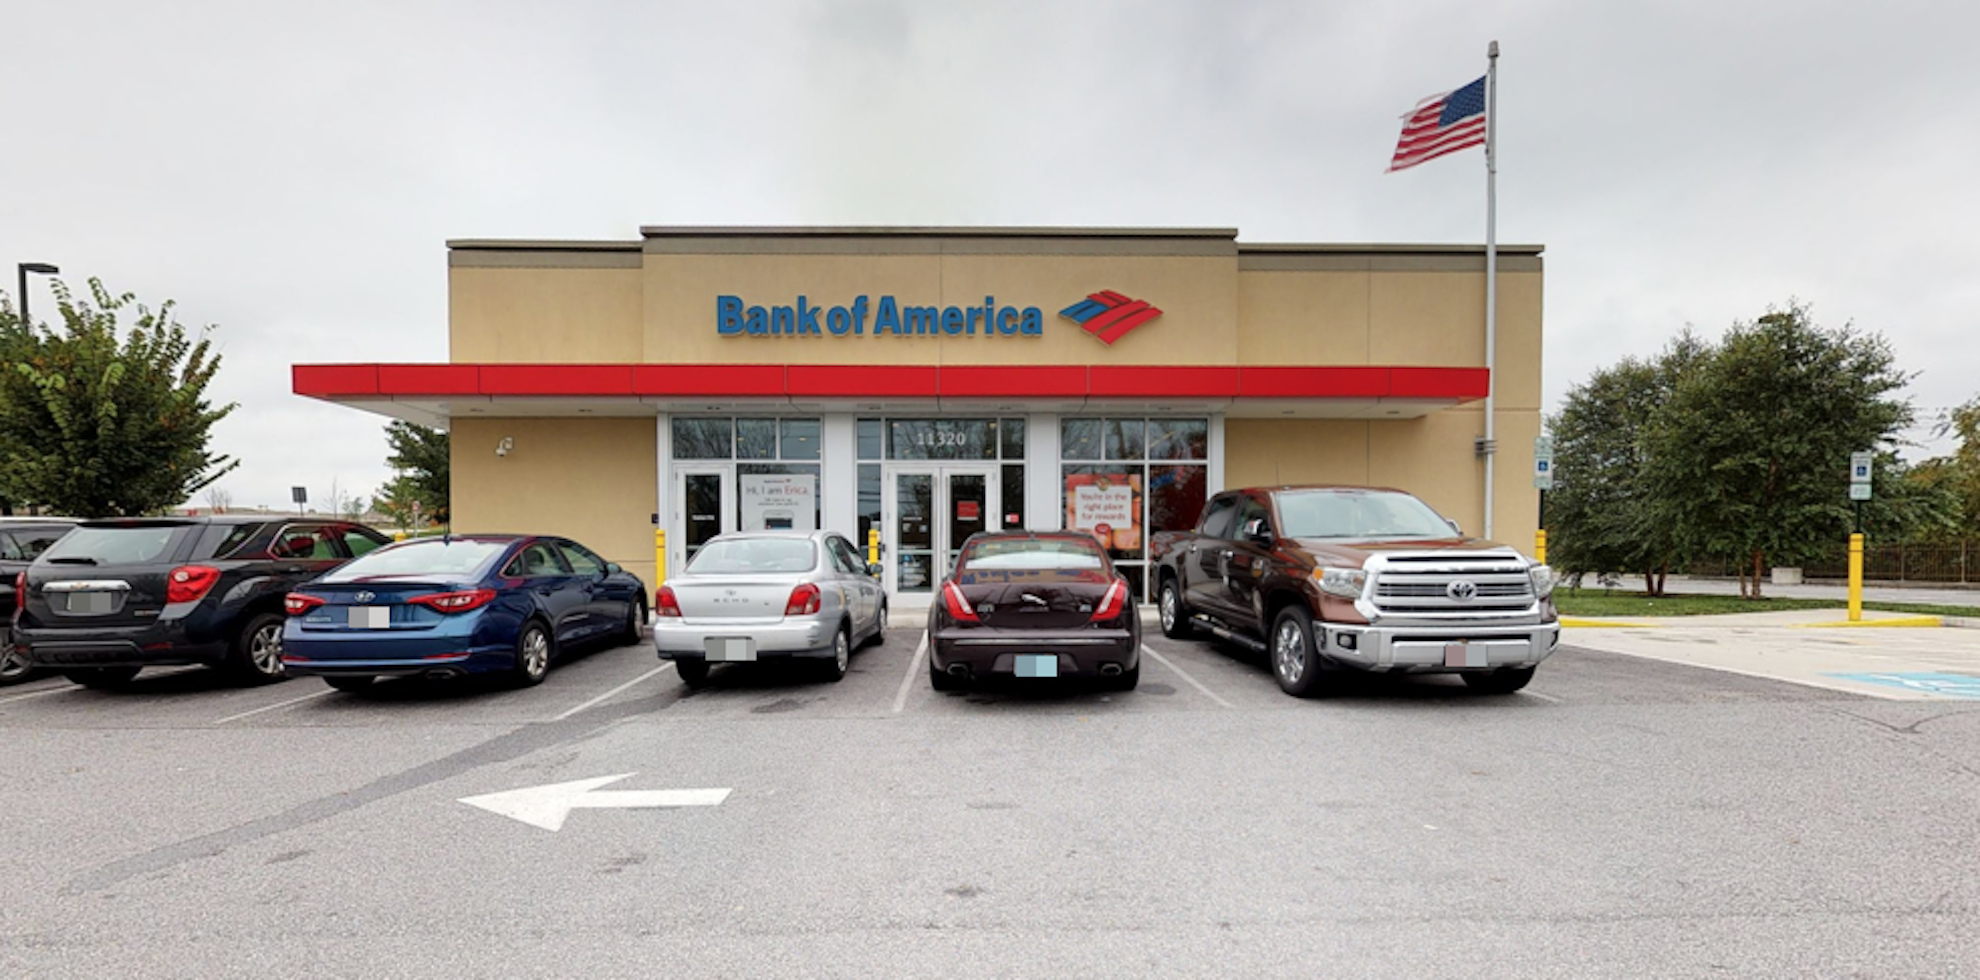 Bank of America financial center with drive-thru ATM   11320 York Rd, Cockeysville, MD 21030